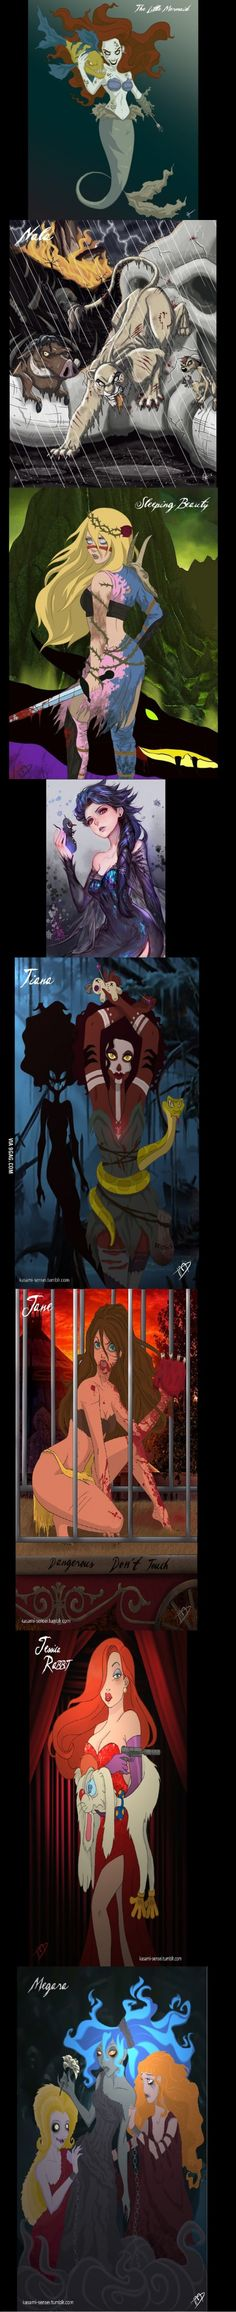 Twisted Disney Part 3